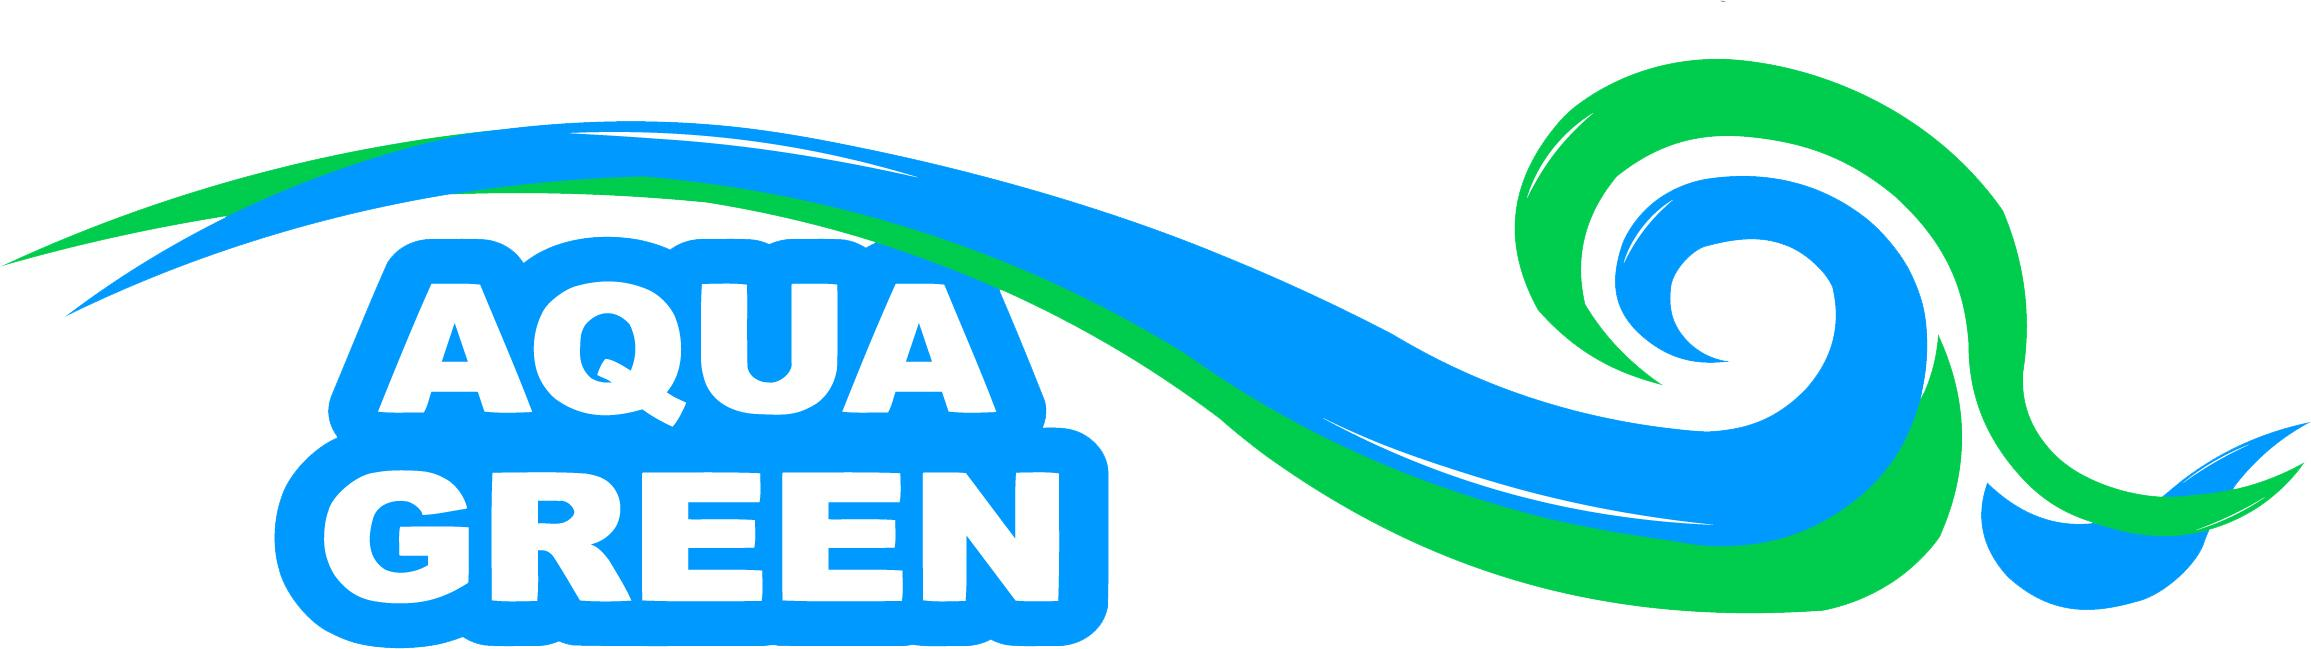 aquagreen logo_14